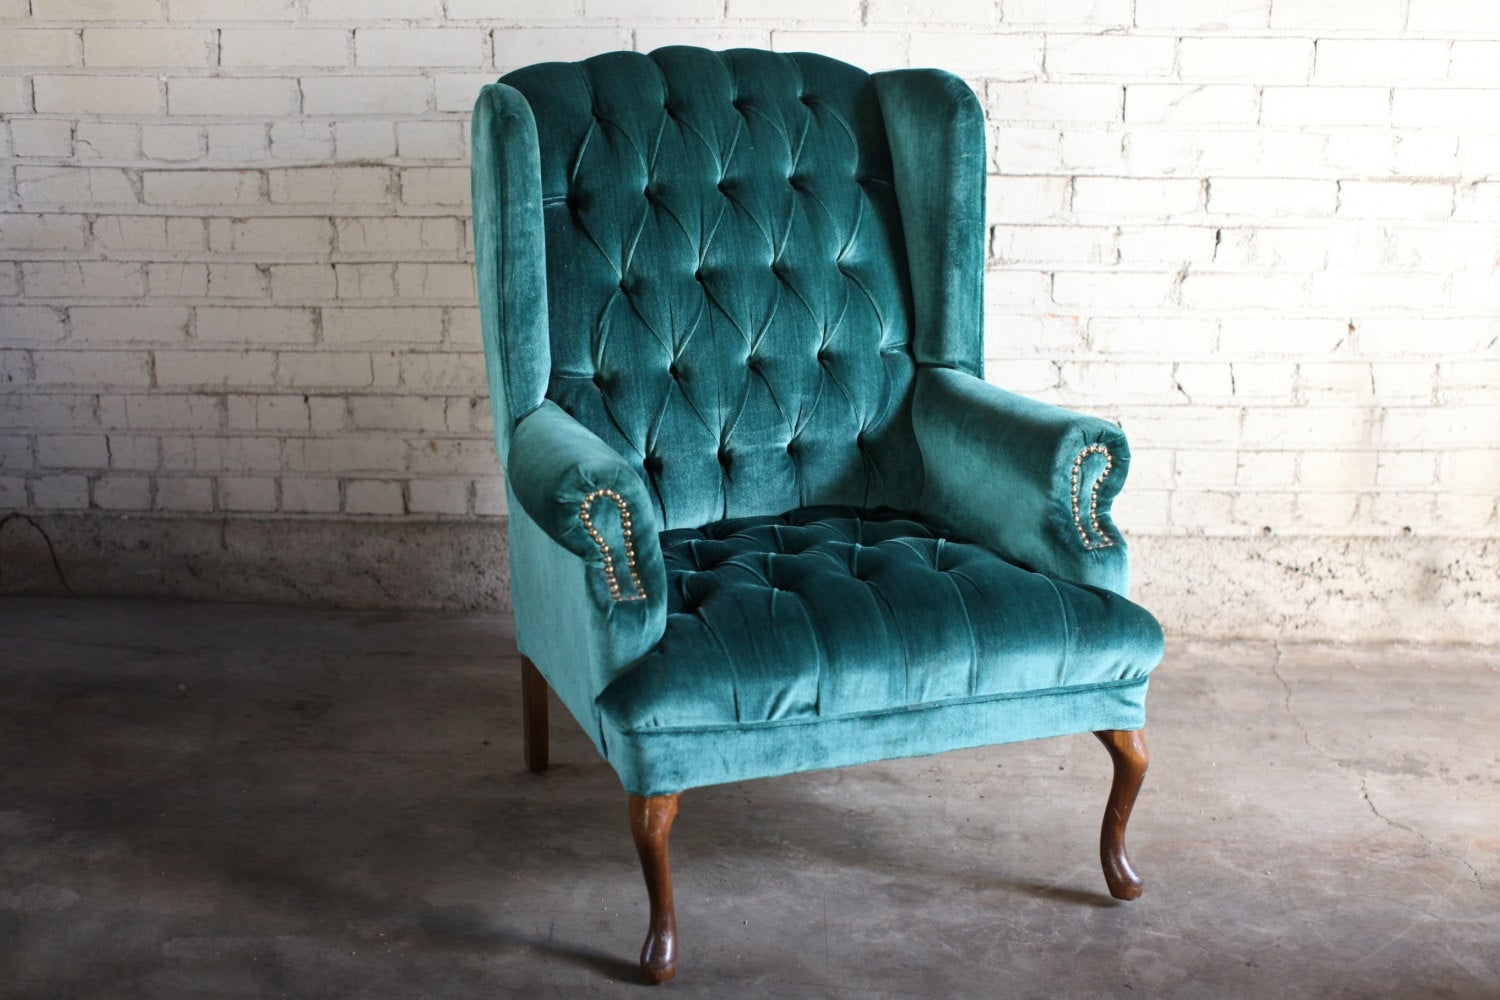 Teal Green Velvet Tufted Wingback Chair 1